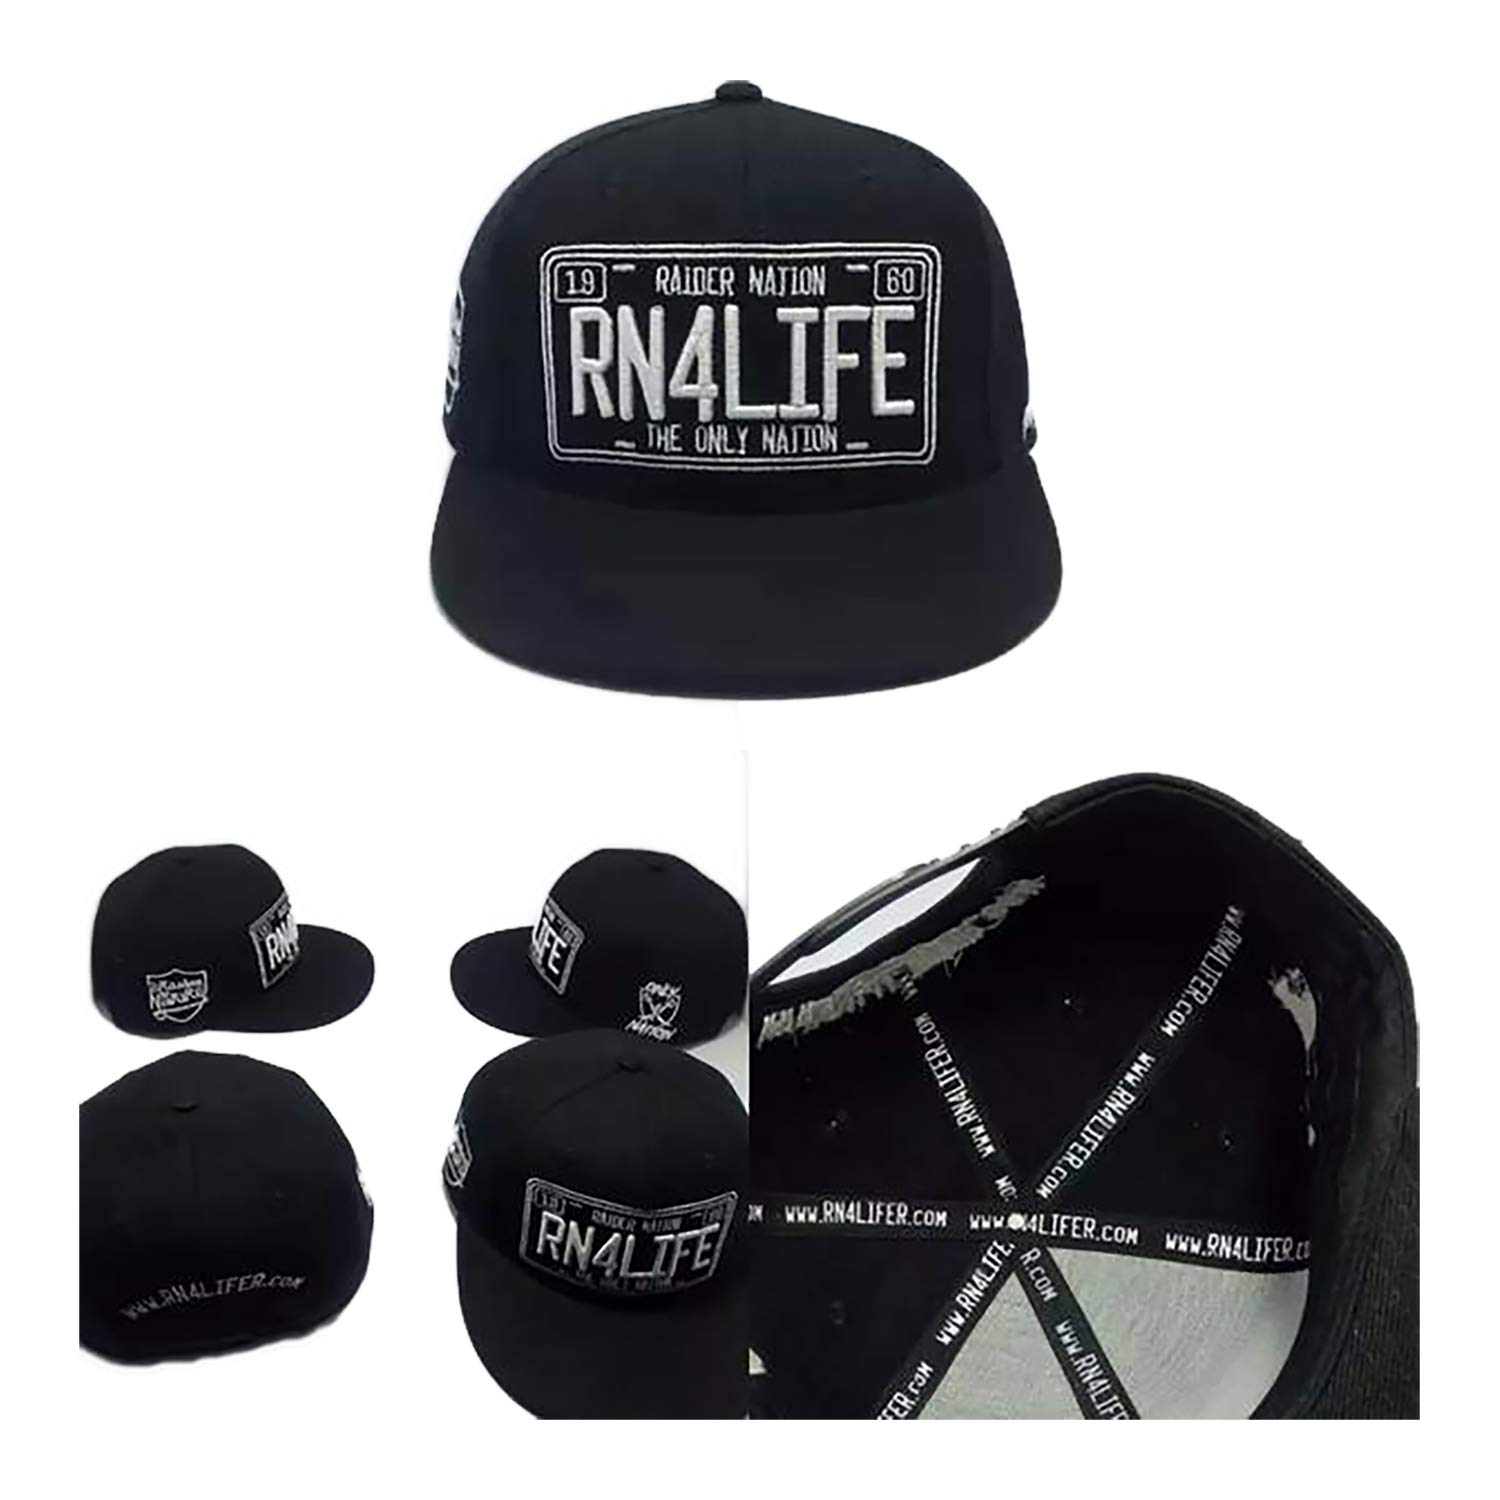 e477ba25 FanaticFan4Life RN4LIFE License to Rep Snapback & Matching Patches - Raider  Nation Hat, Raiders Cap